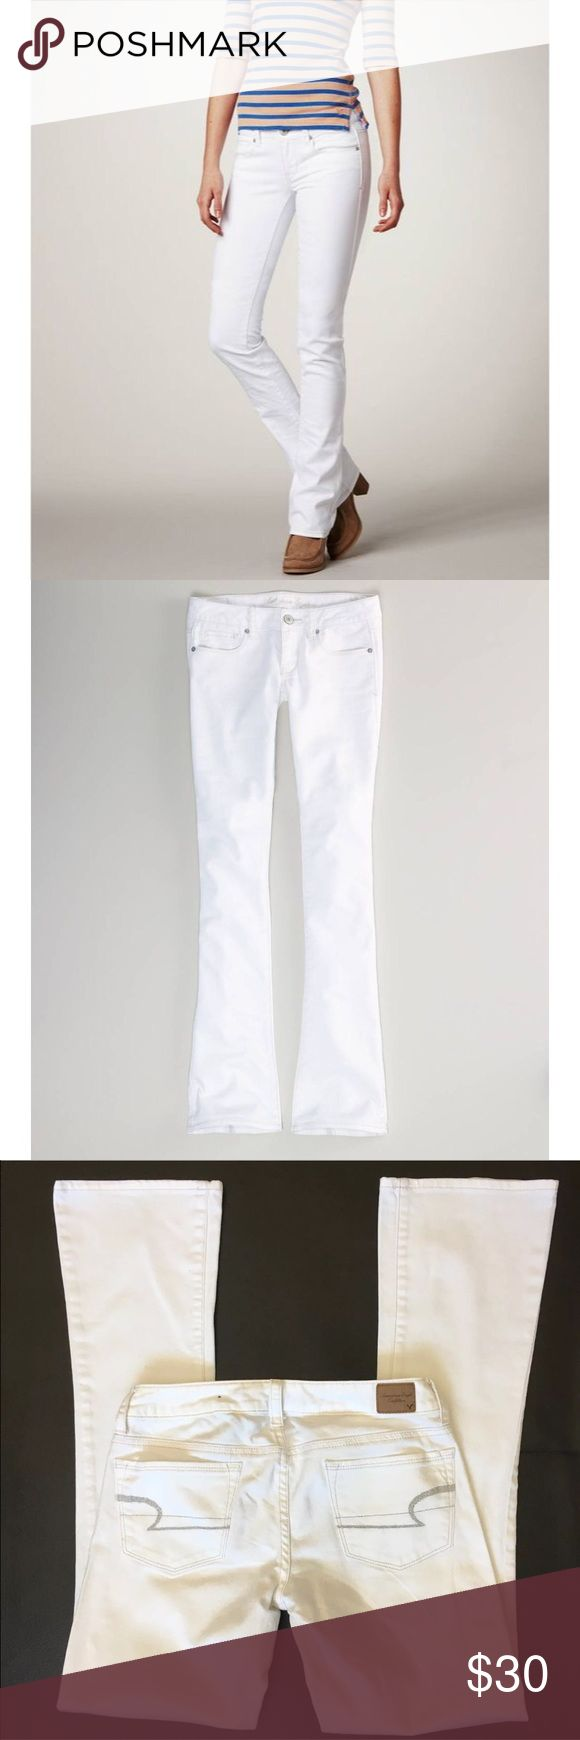 NWT American eagle skinny kick jeans Brand new With tags American eagle skinny kick white jeans size 4 short. Stretch. Line across tag to avoid store returns. American Eagle Outfitters Pants